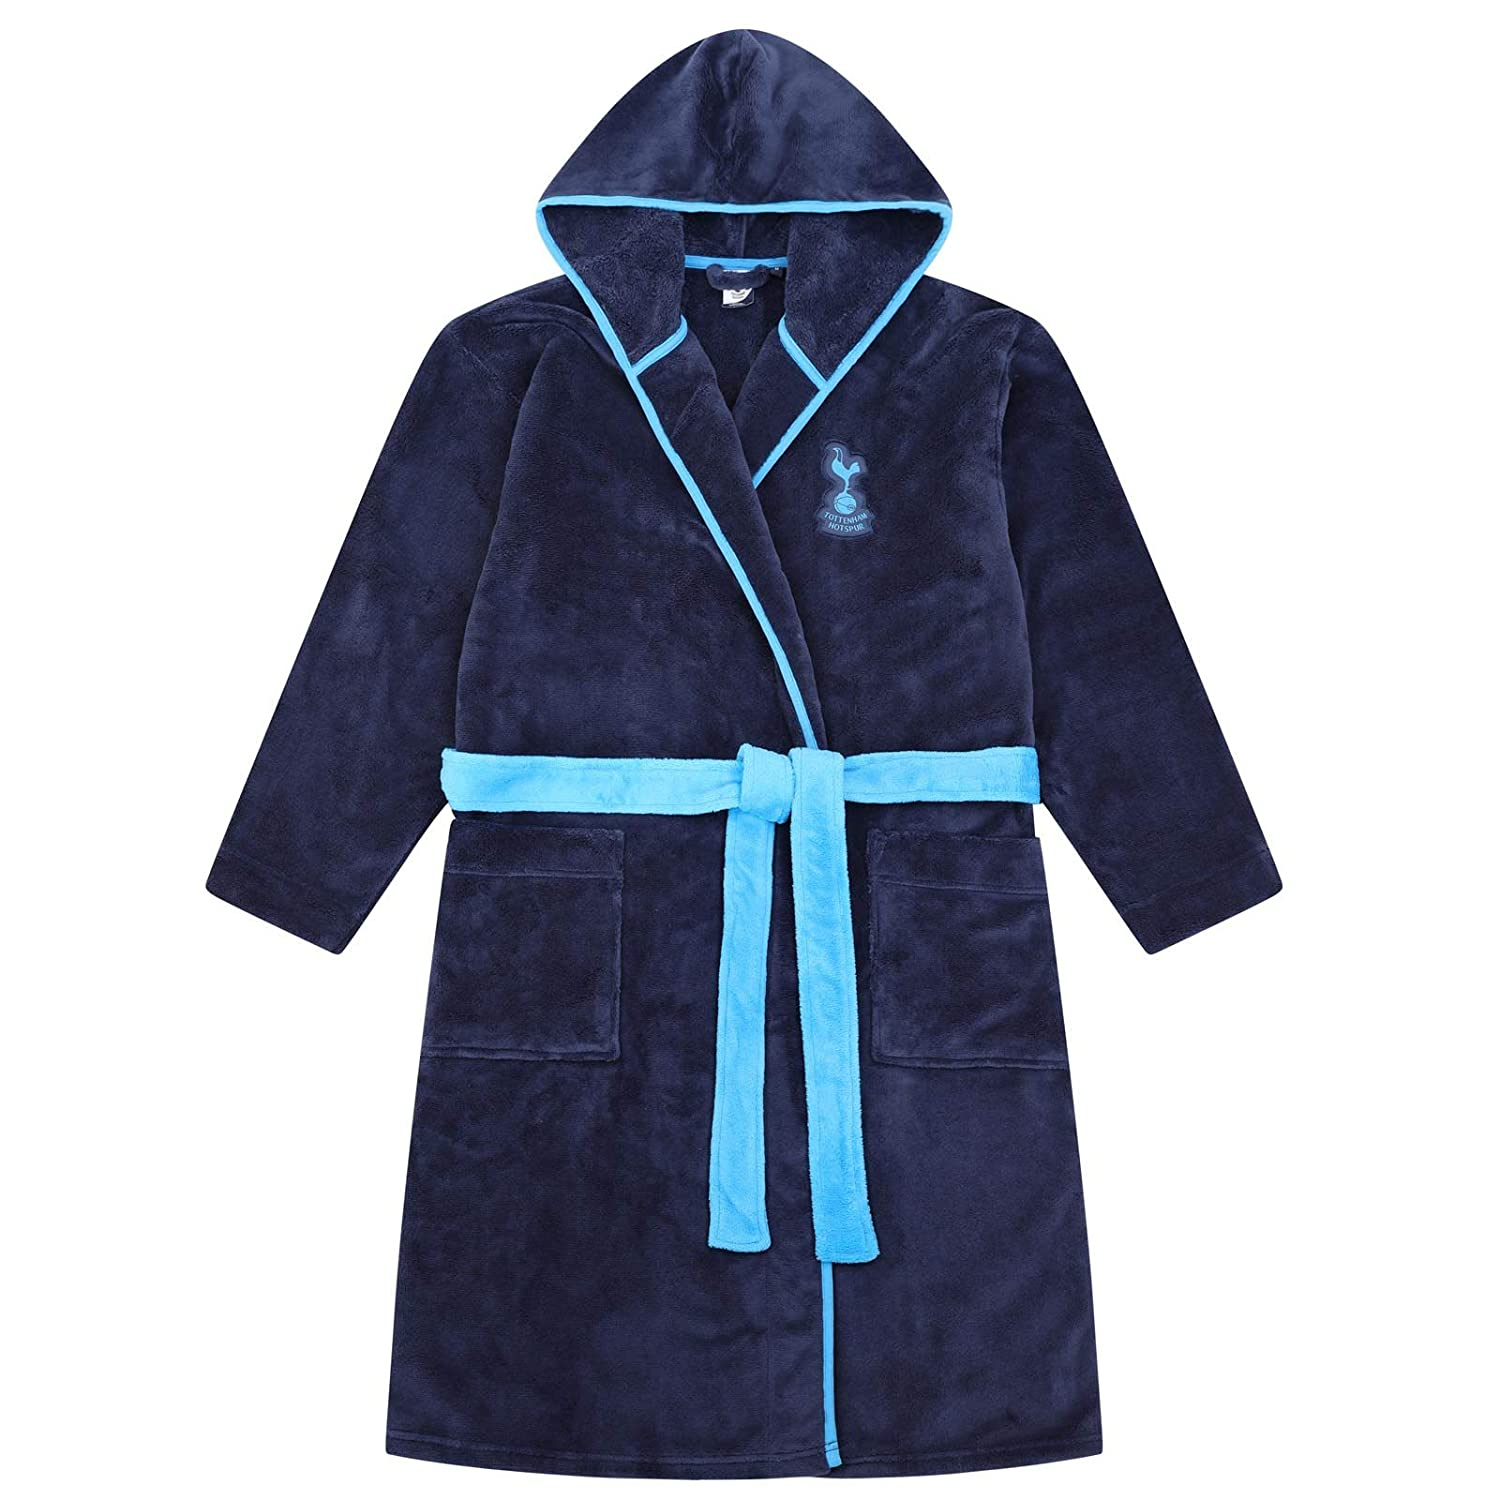 Tottenham Hotspur FC Official Gift Mens Hooded Fleece Dressing Gown Robe